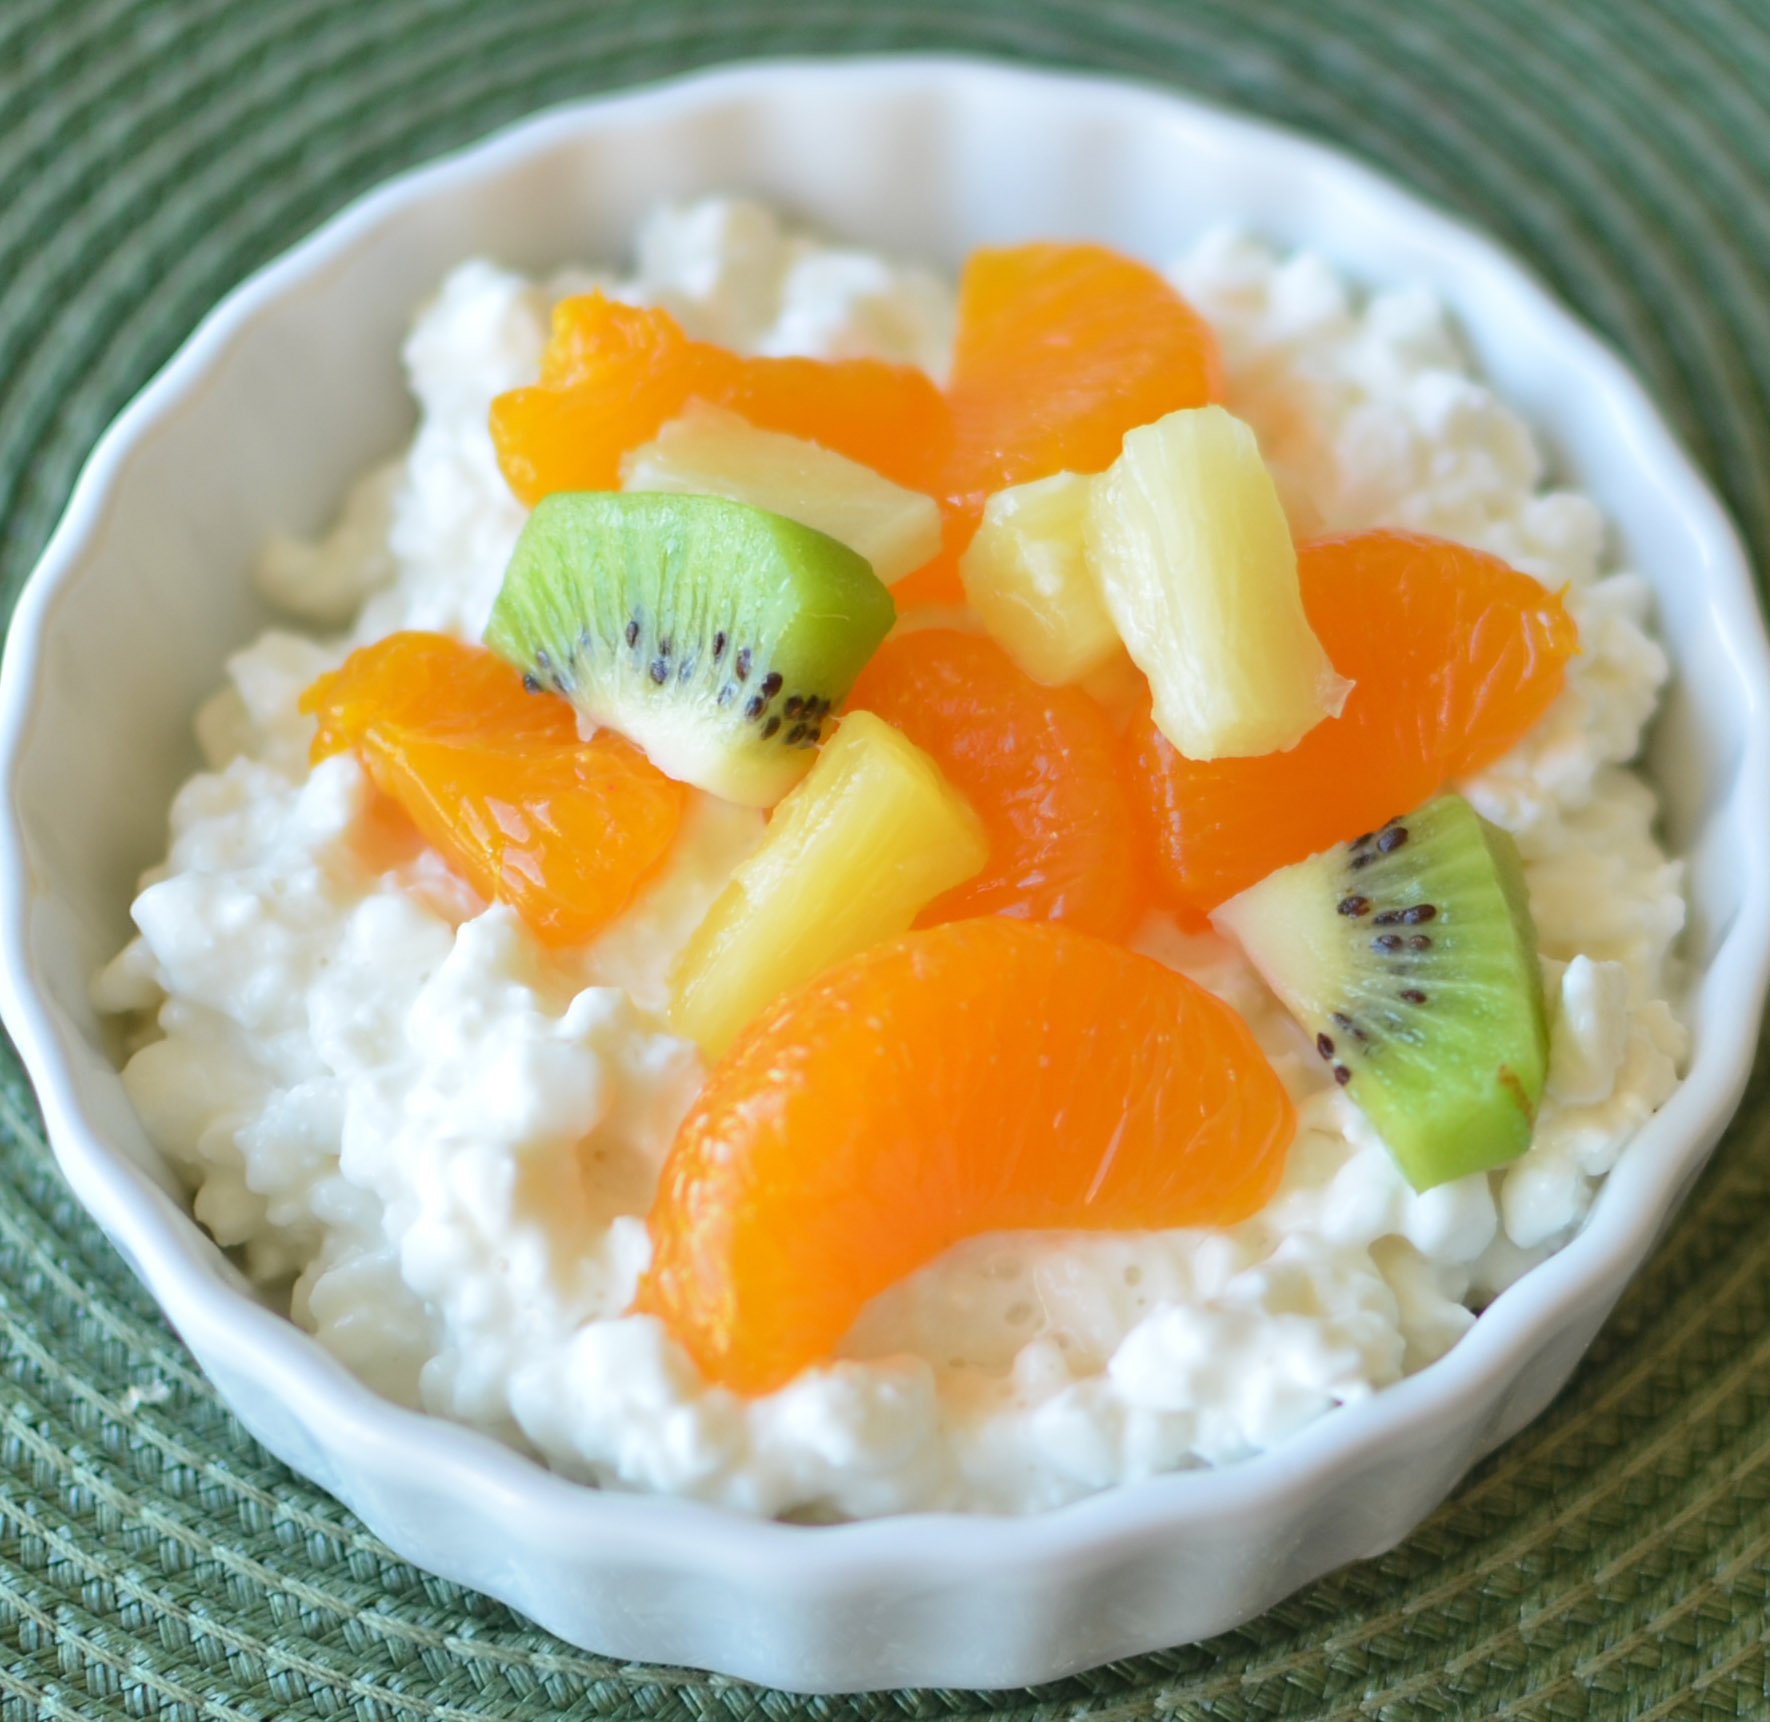 High protein snack healthy ideas for kids cottage cheese and fruit sisterspd